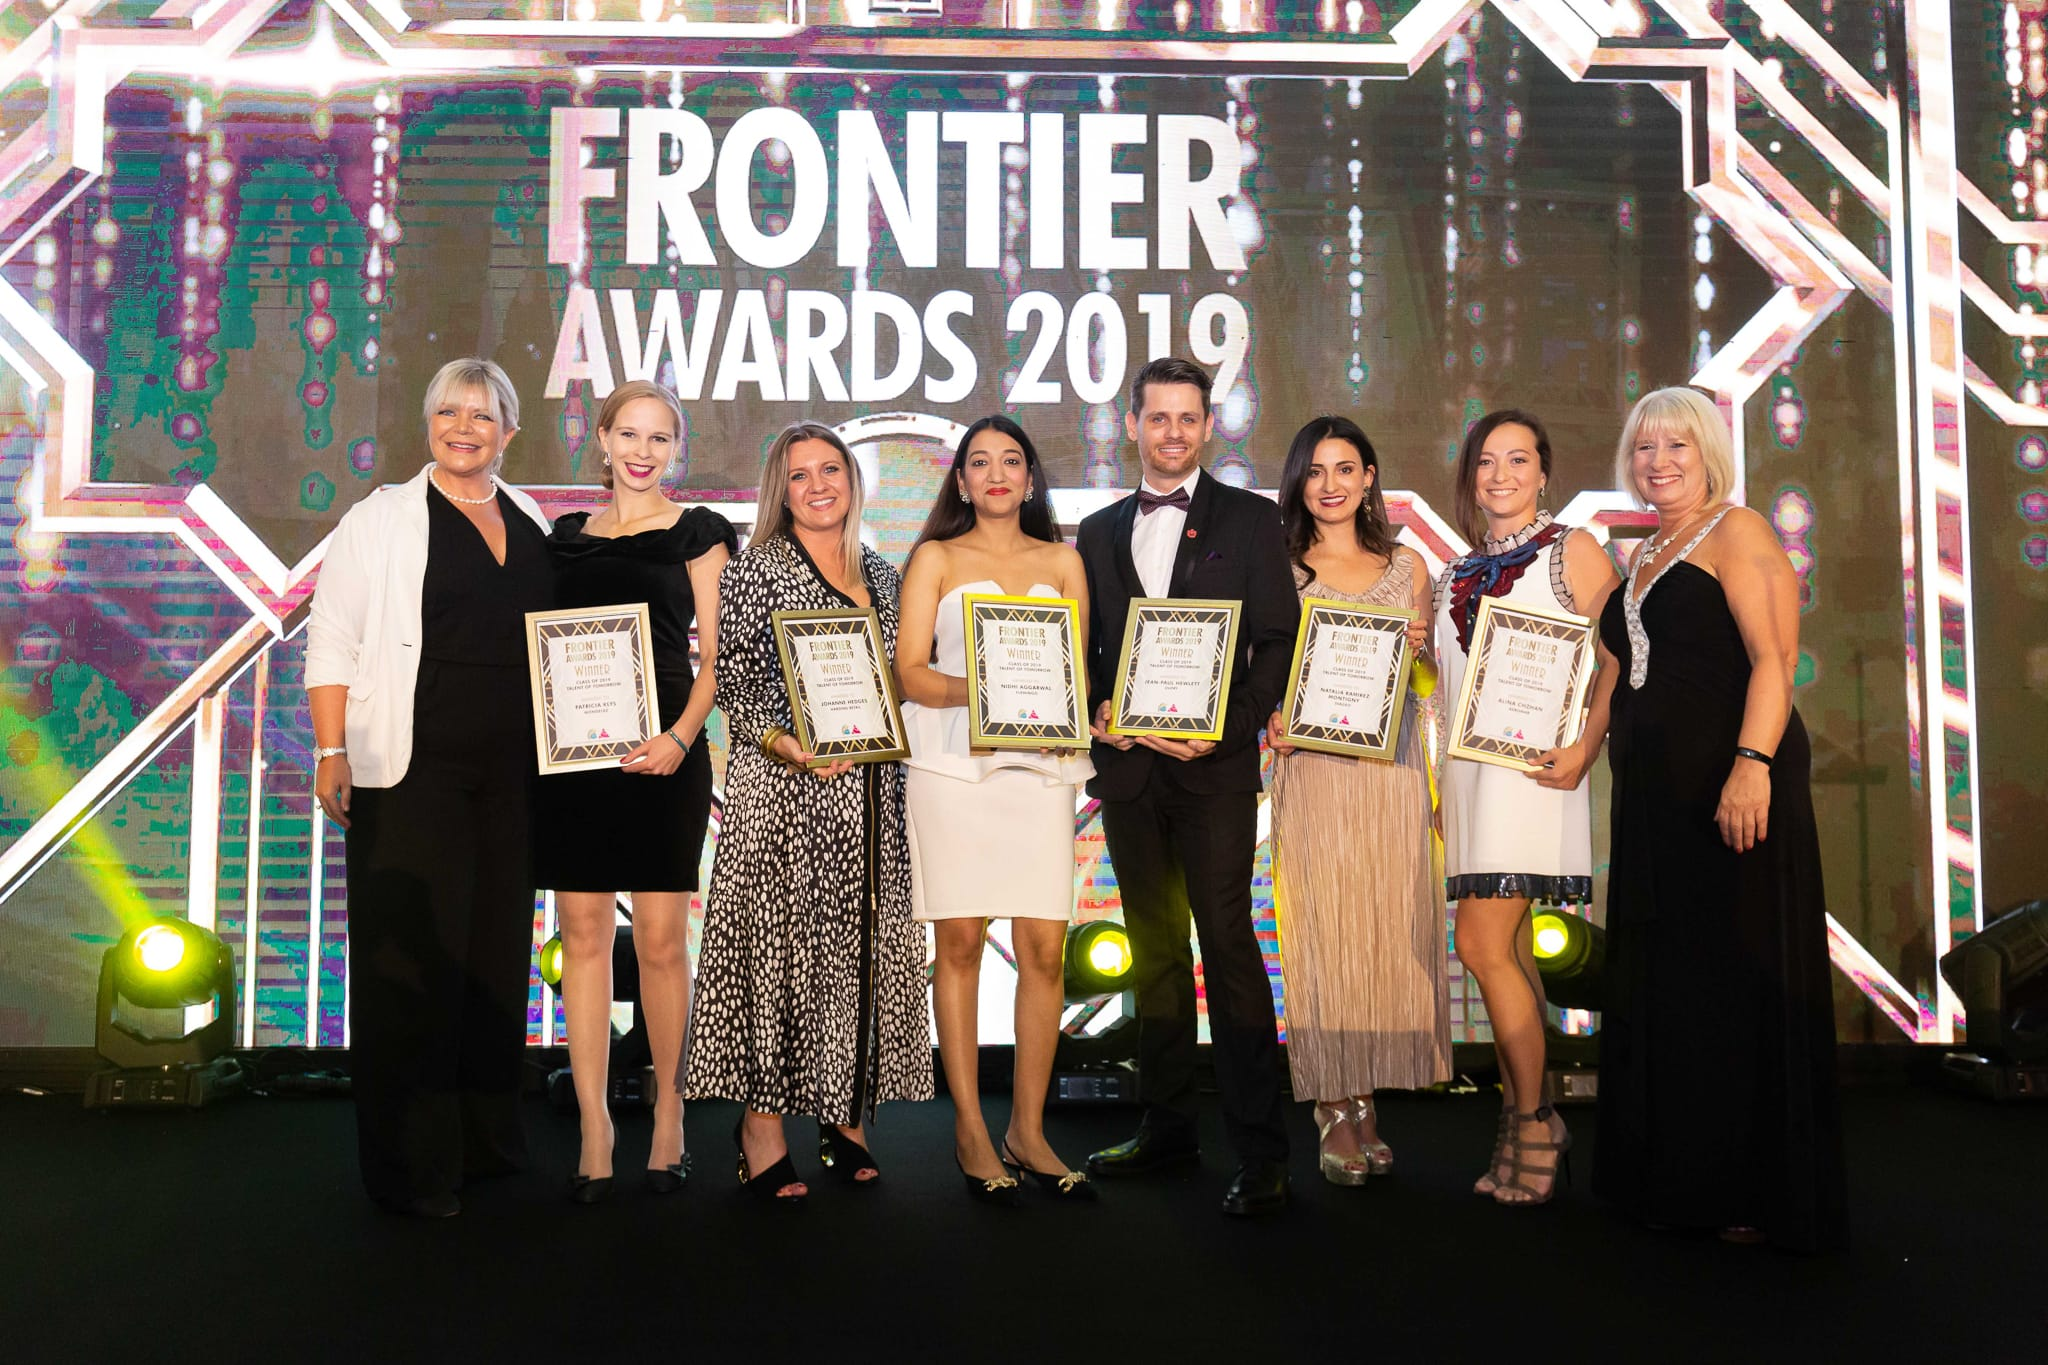 Frontier Awards 2019 - Professional photographer on the Côte d'Azur